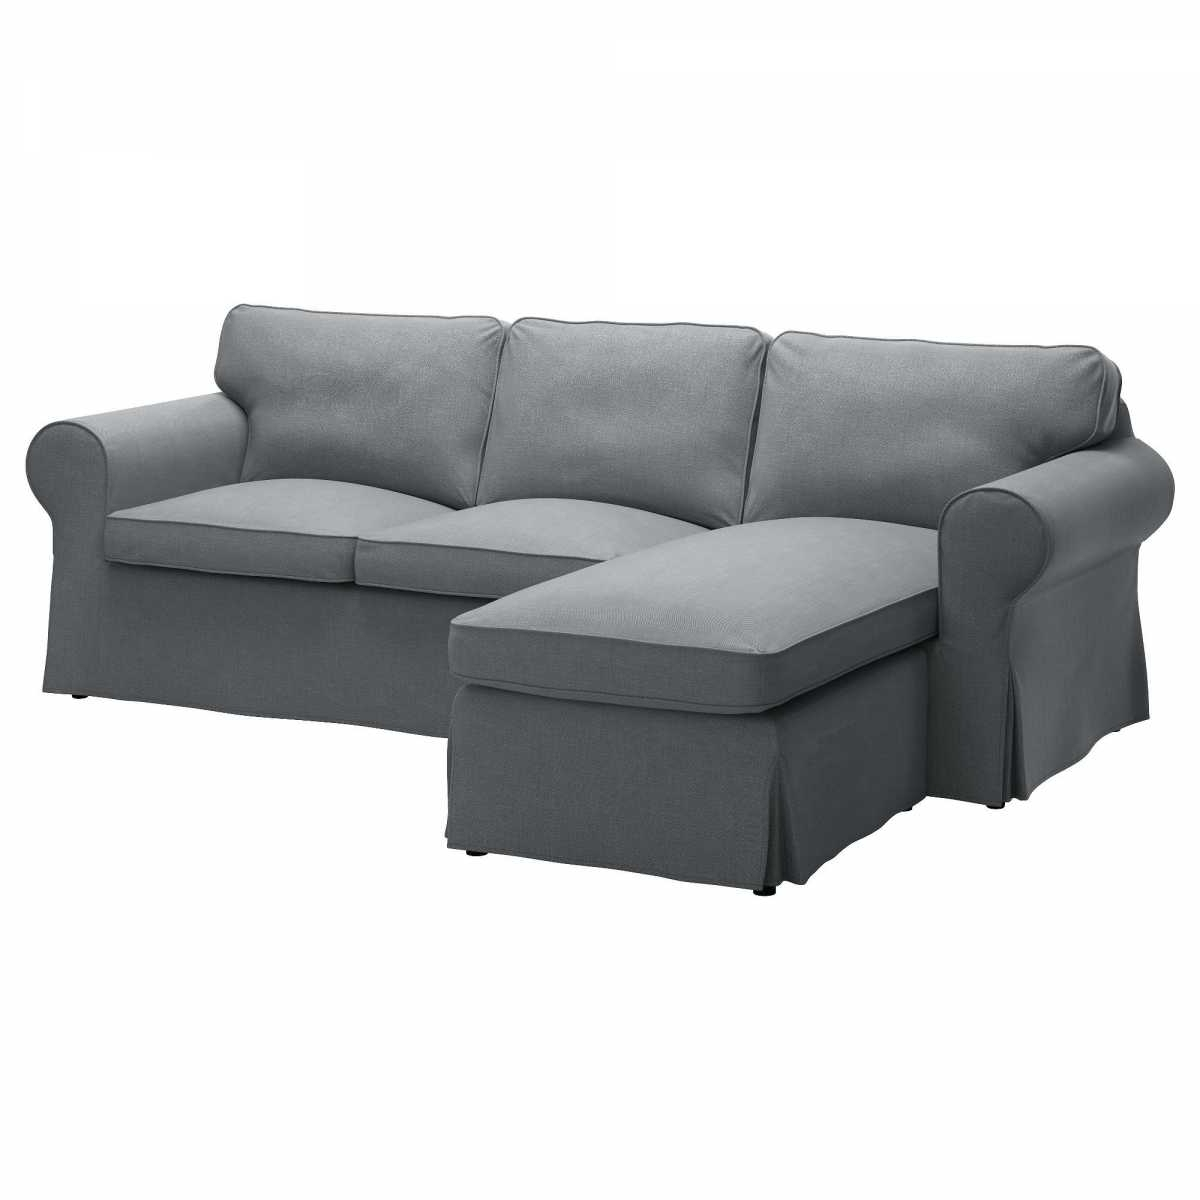 Most Current Loveseat : Chaise Loveseat New Small Loveseat With Chaise Lounge Regarding Chaise Loveseats (View 2 of 15)